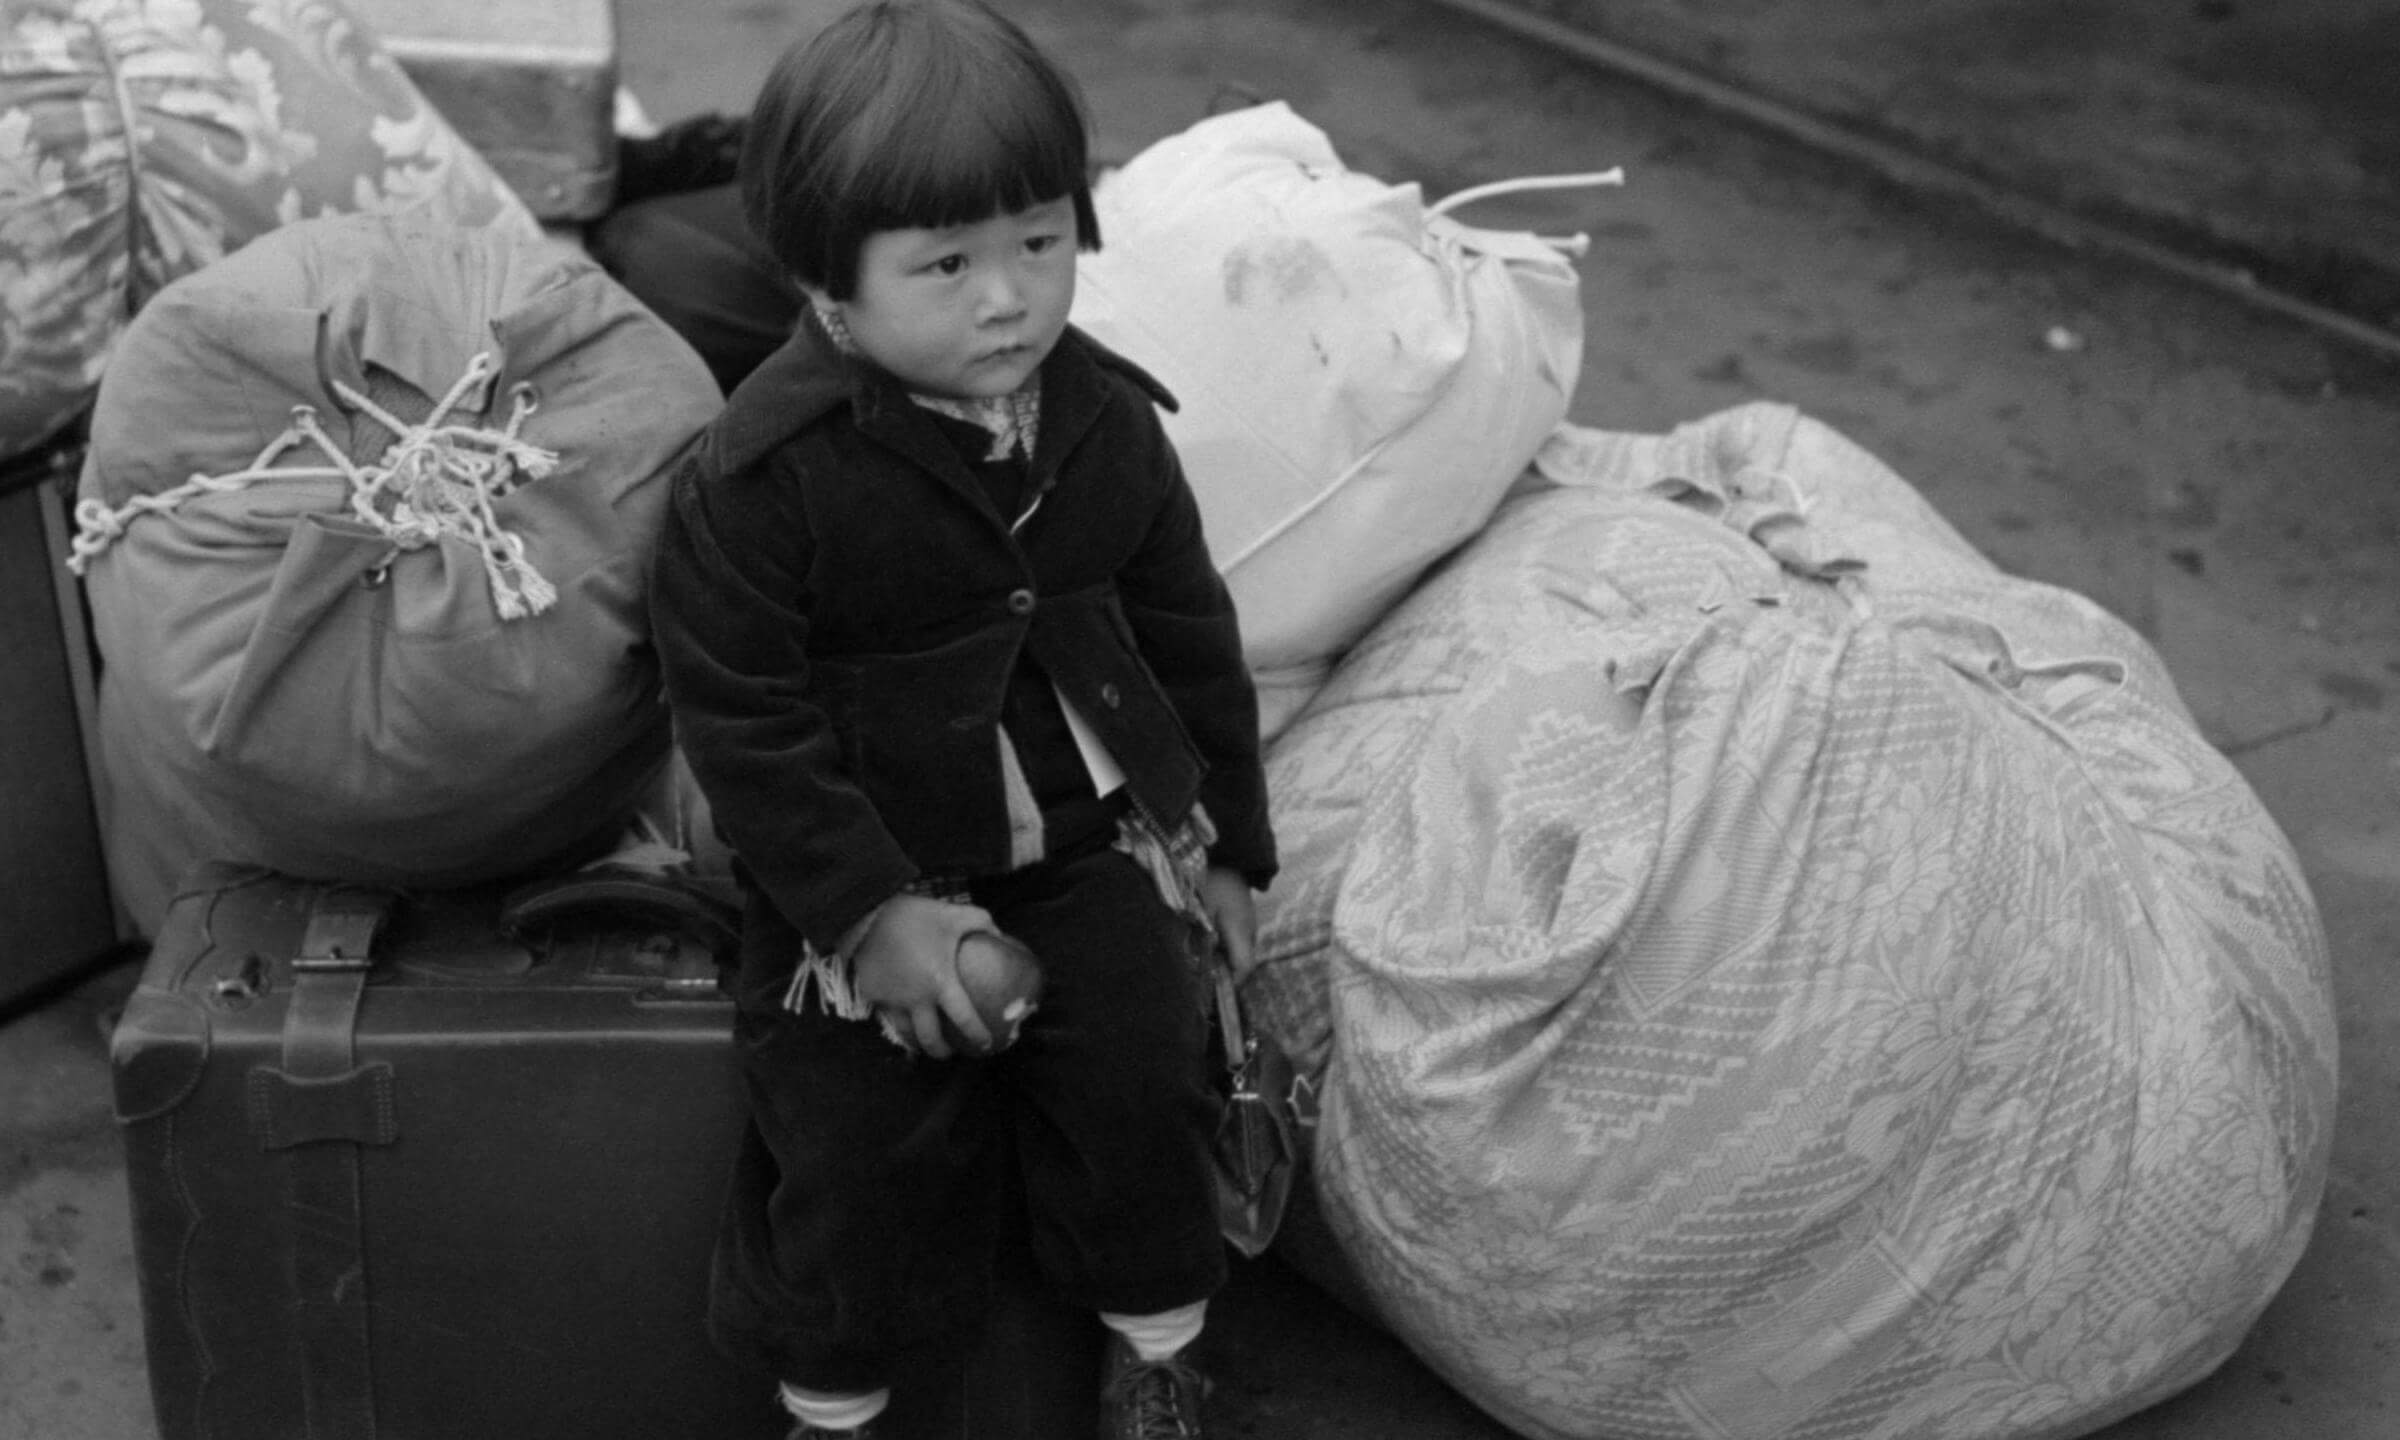 Japanese-American internee. Little child being evacuated with his parents to Owens Valley Internment Camp Manzanar over 200 miles Los Angeles